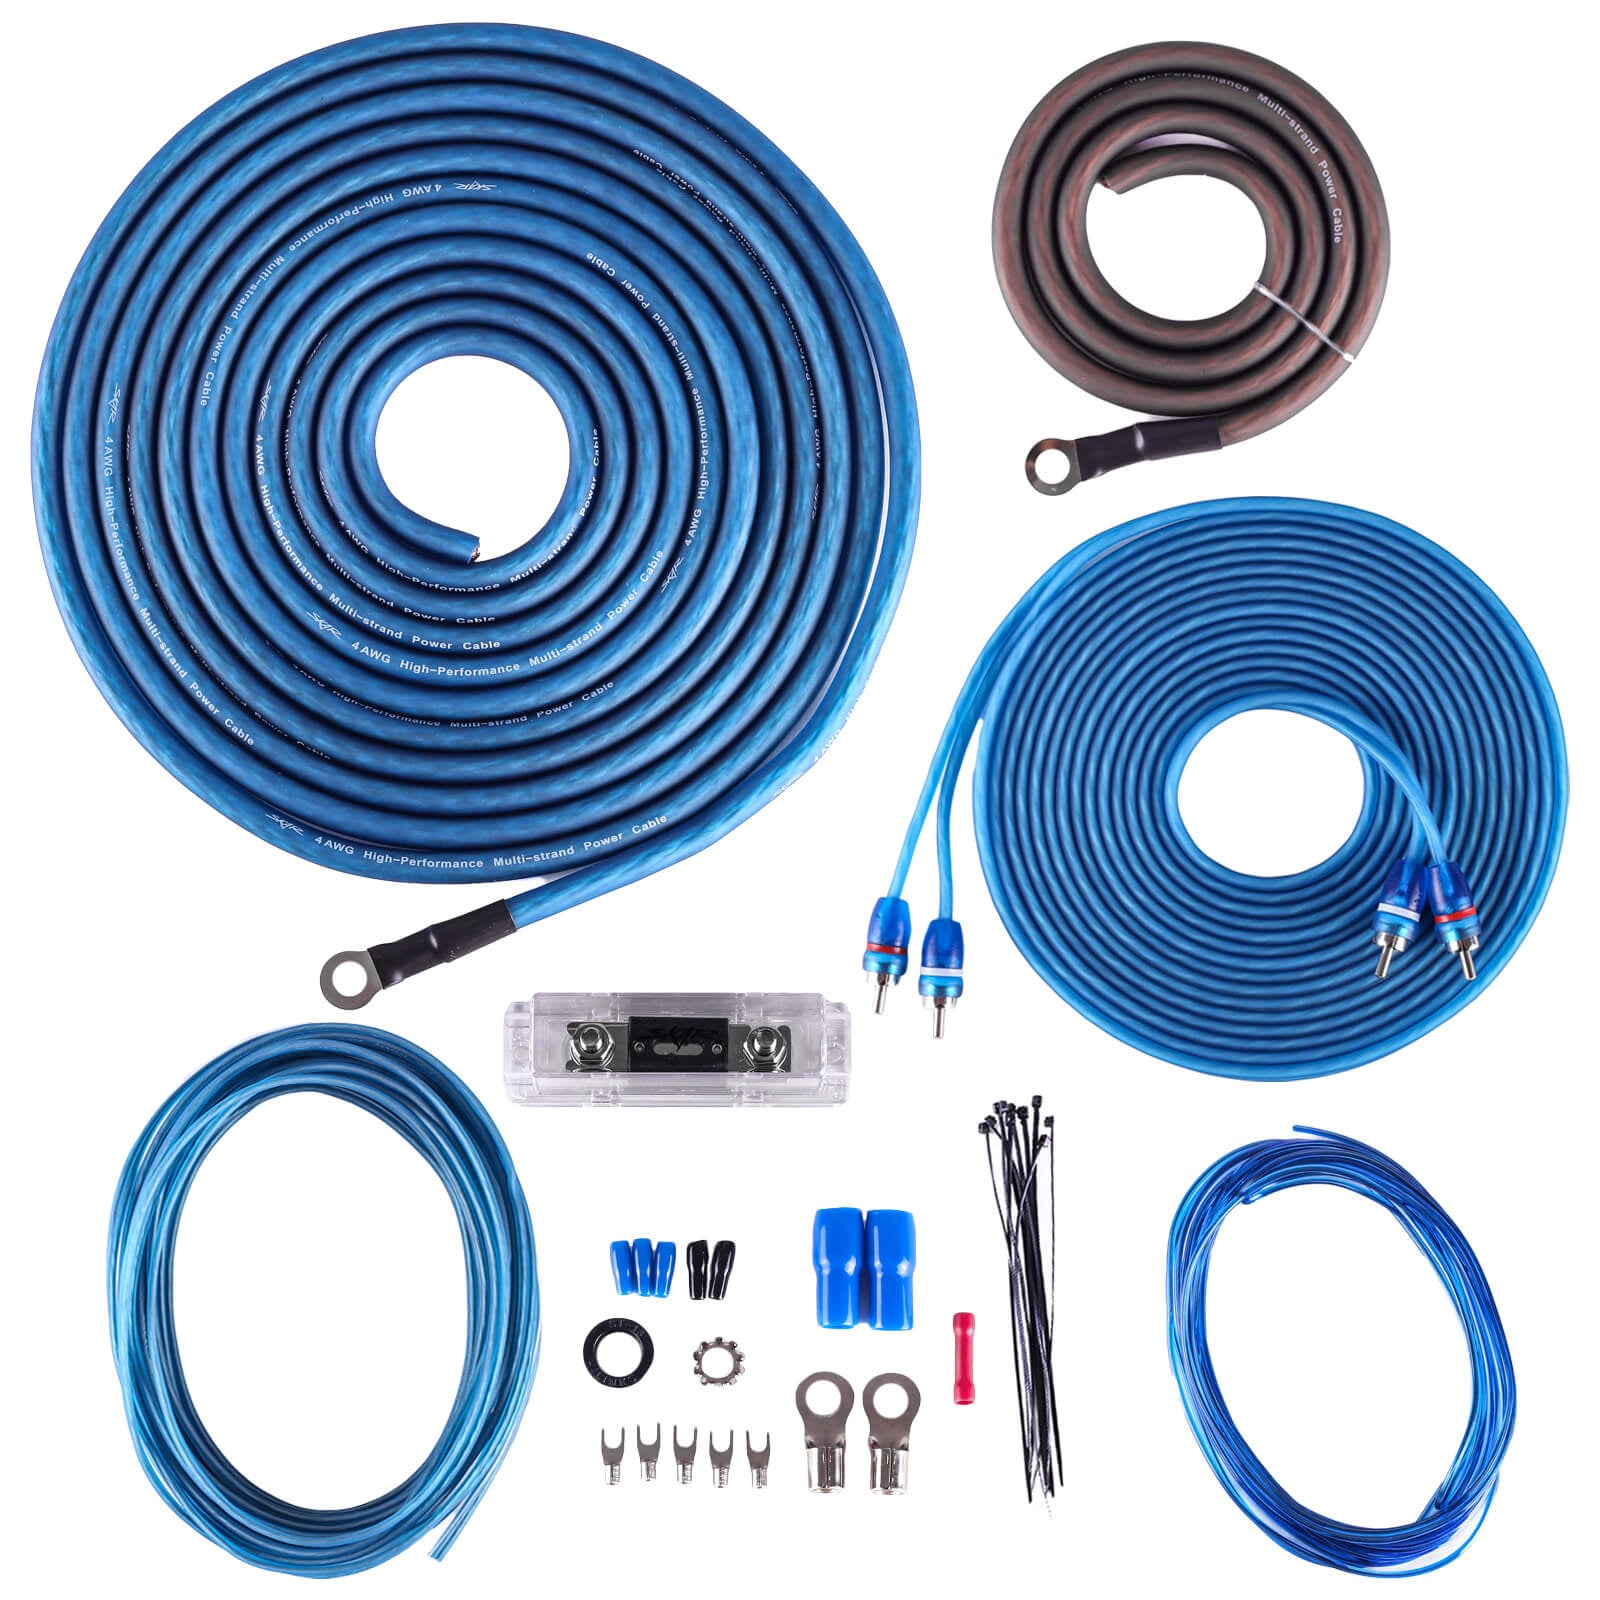 Skar Audio SKAR4ANL-CCA 4 Gauge CCA 1,200 Watt Complete Amplifier Installation Wiring Kit - Main Image